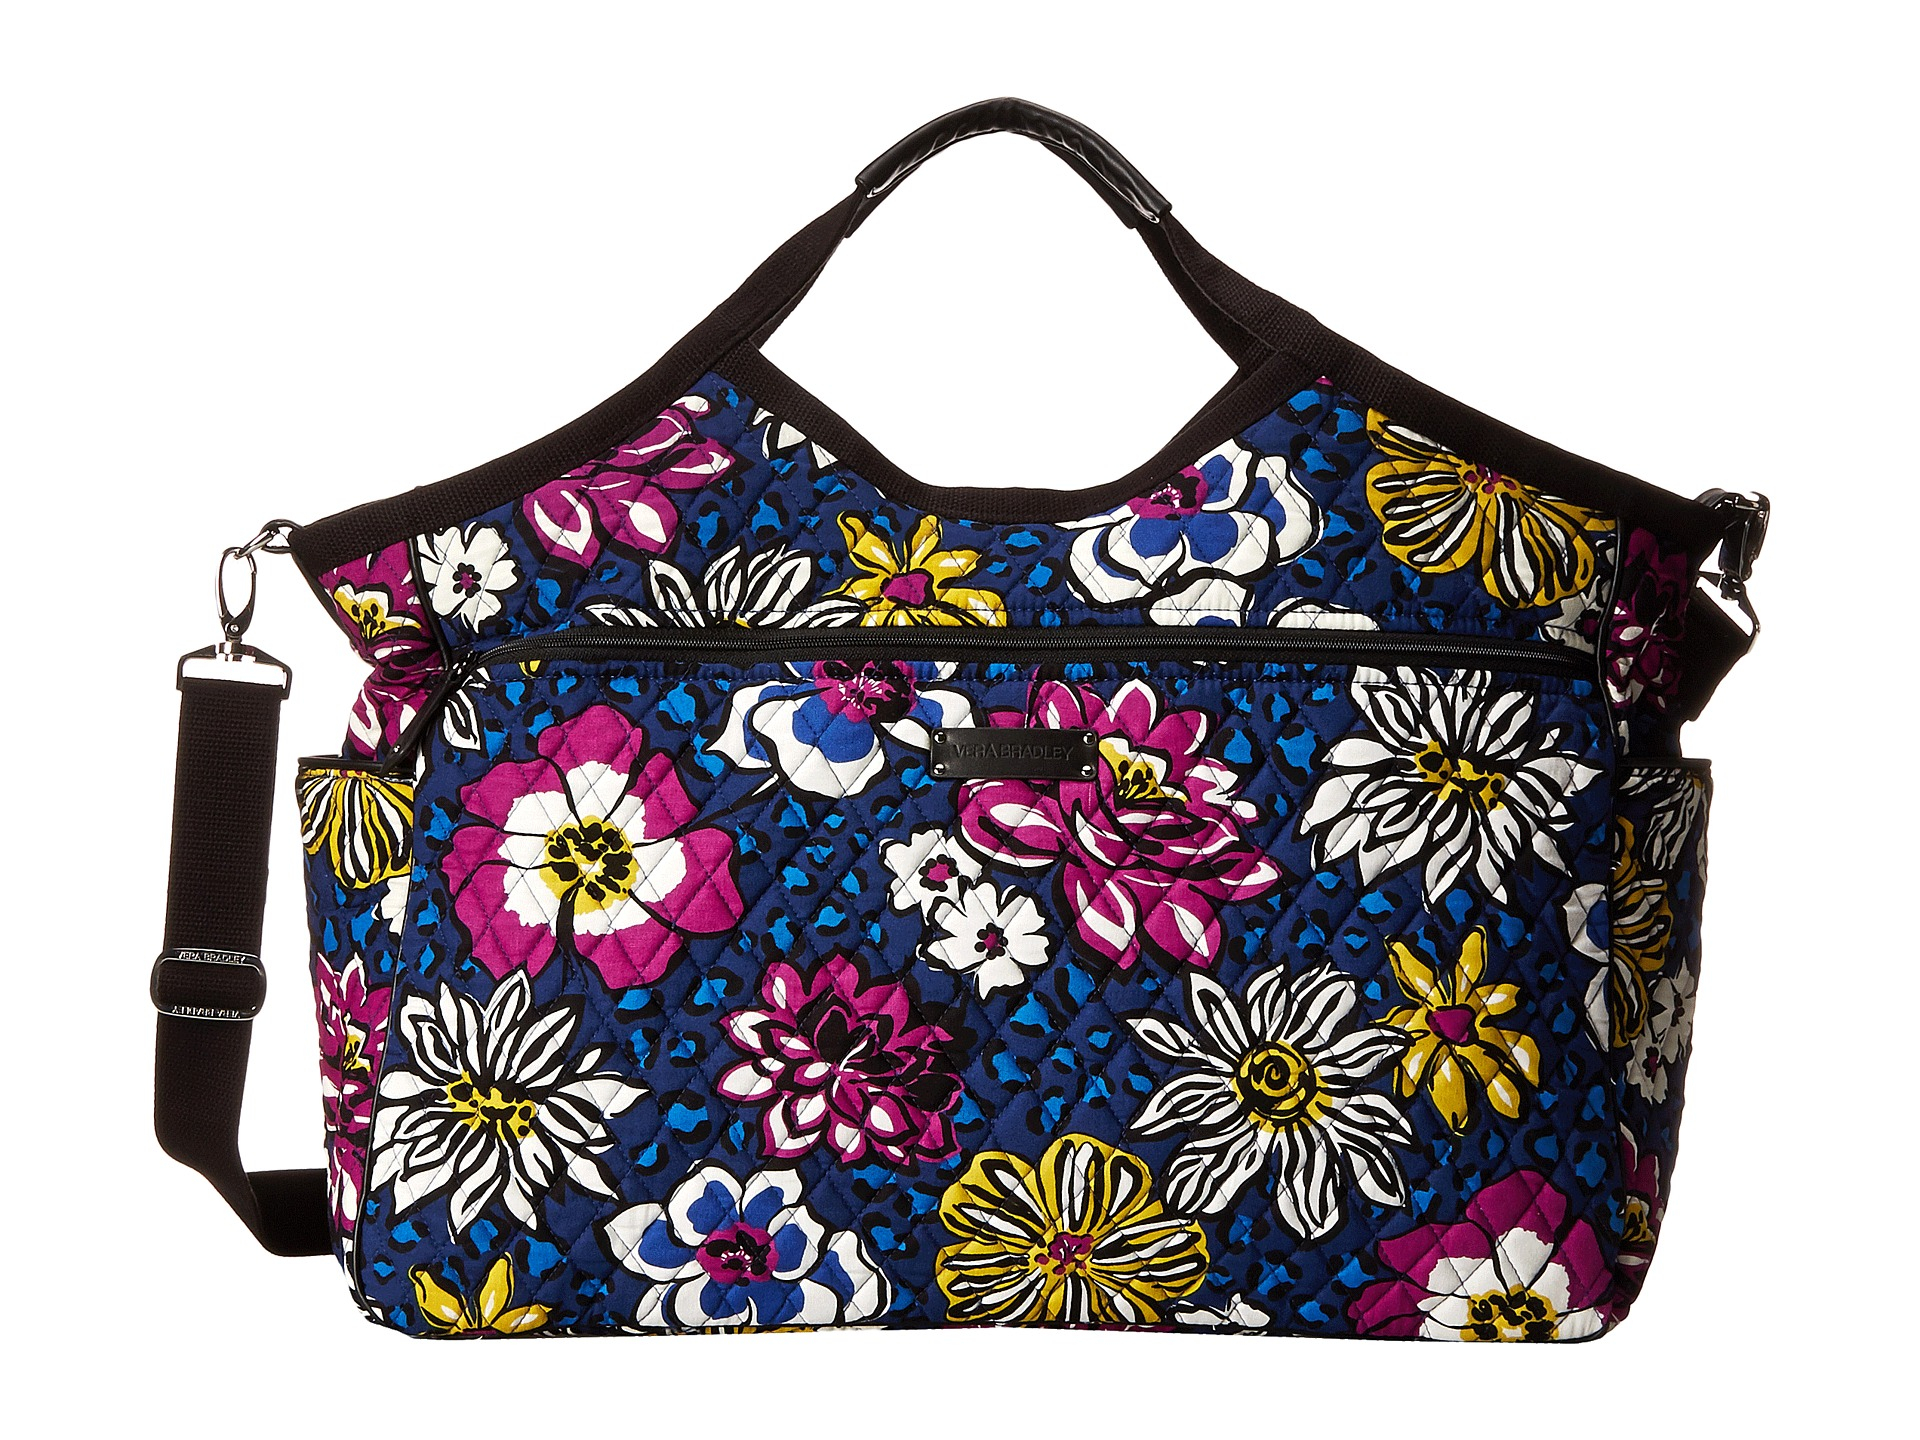 Lyst Vera Bradley Carryall Travel Bag In Purple